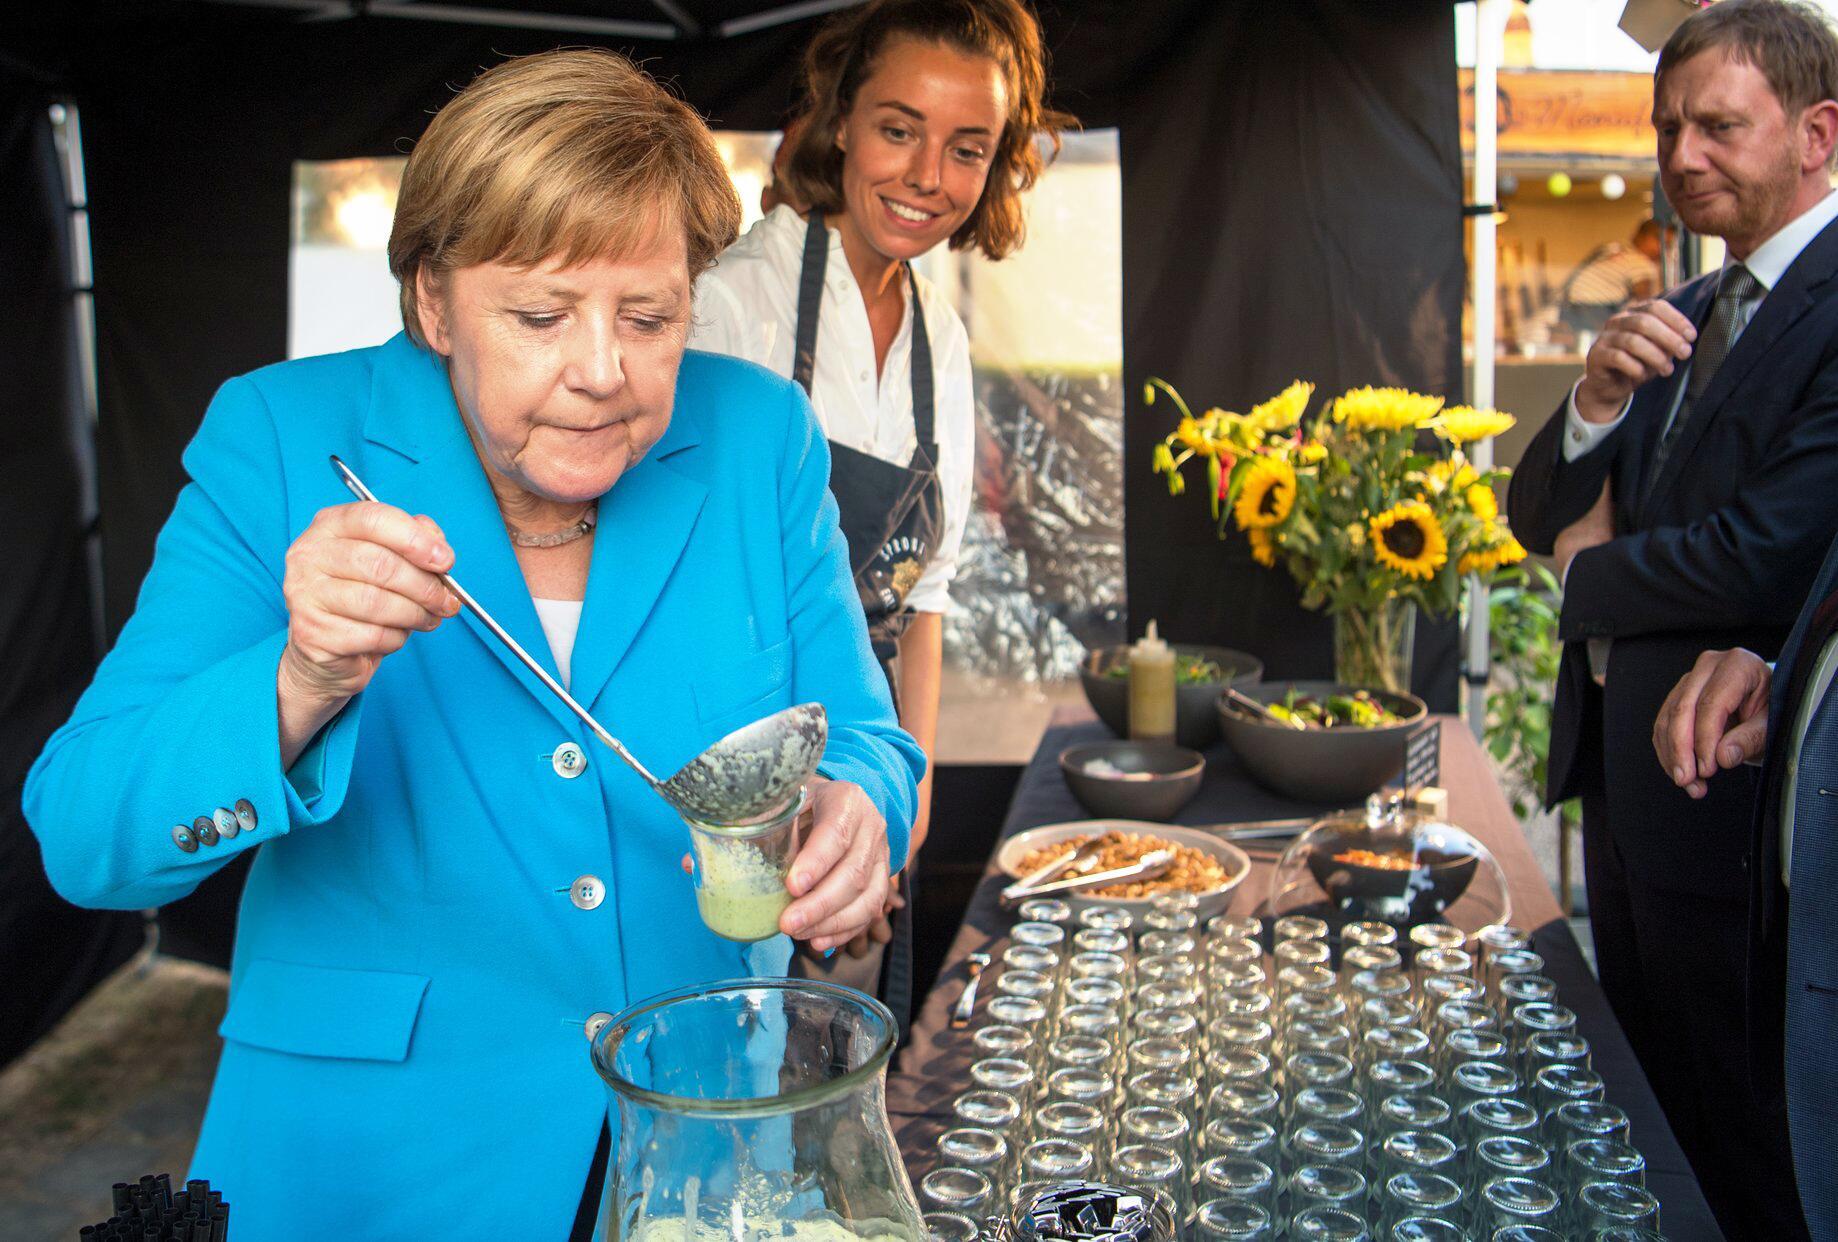 Bild zu Merkel attends Saxon CDU parliamentary group party in Dresden